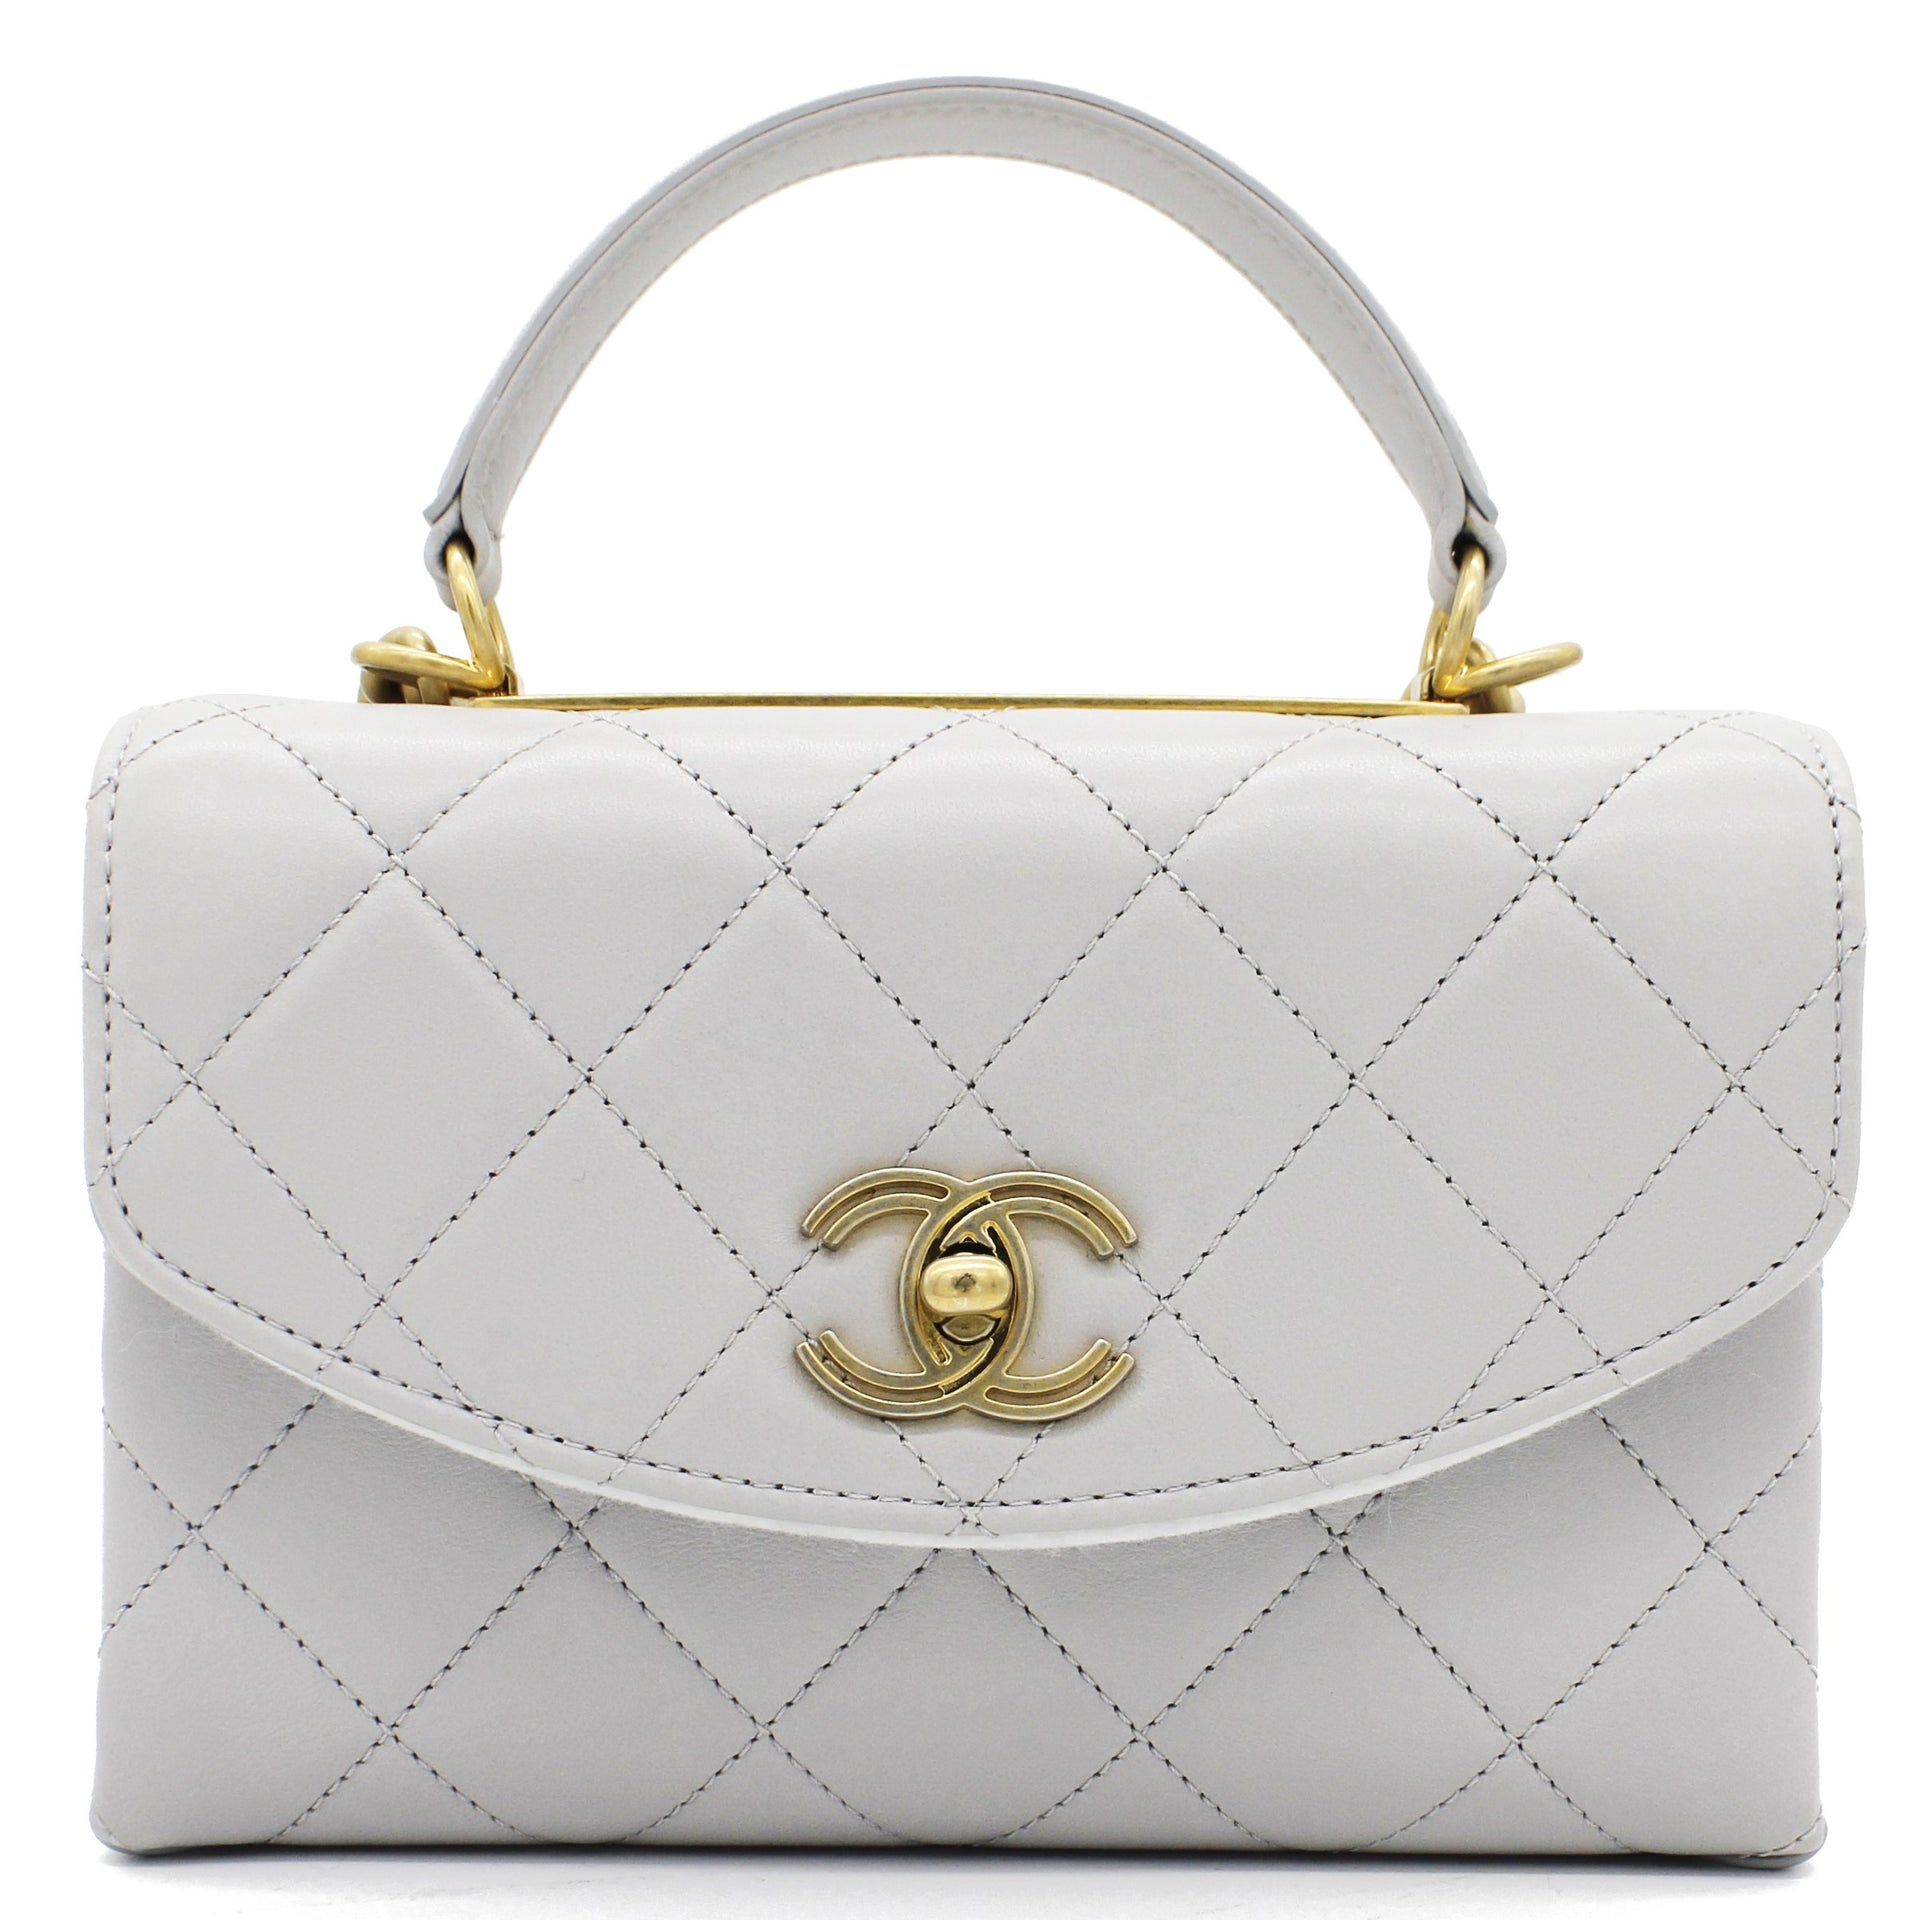 Quilted Lambskin Top Handle Flap Bag